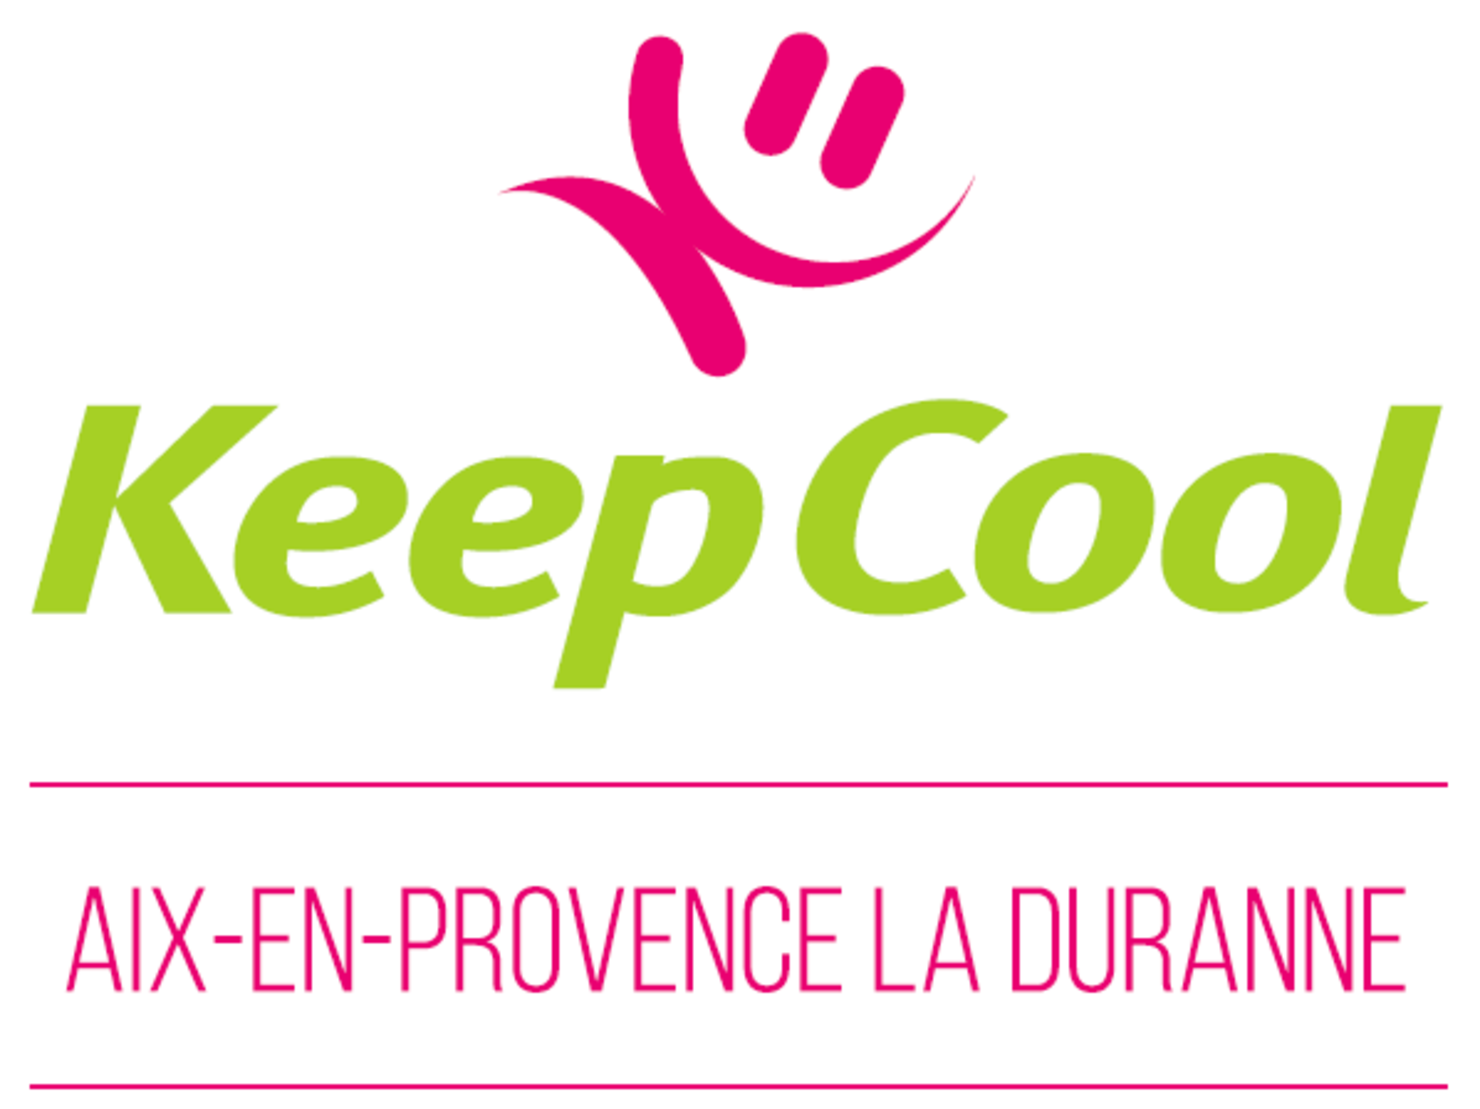 Keep cool aix la duranne aix en provence tarifs avis for Keep cool salon de provence